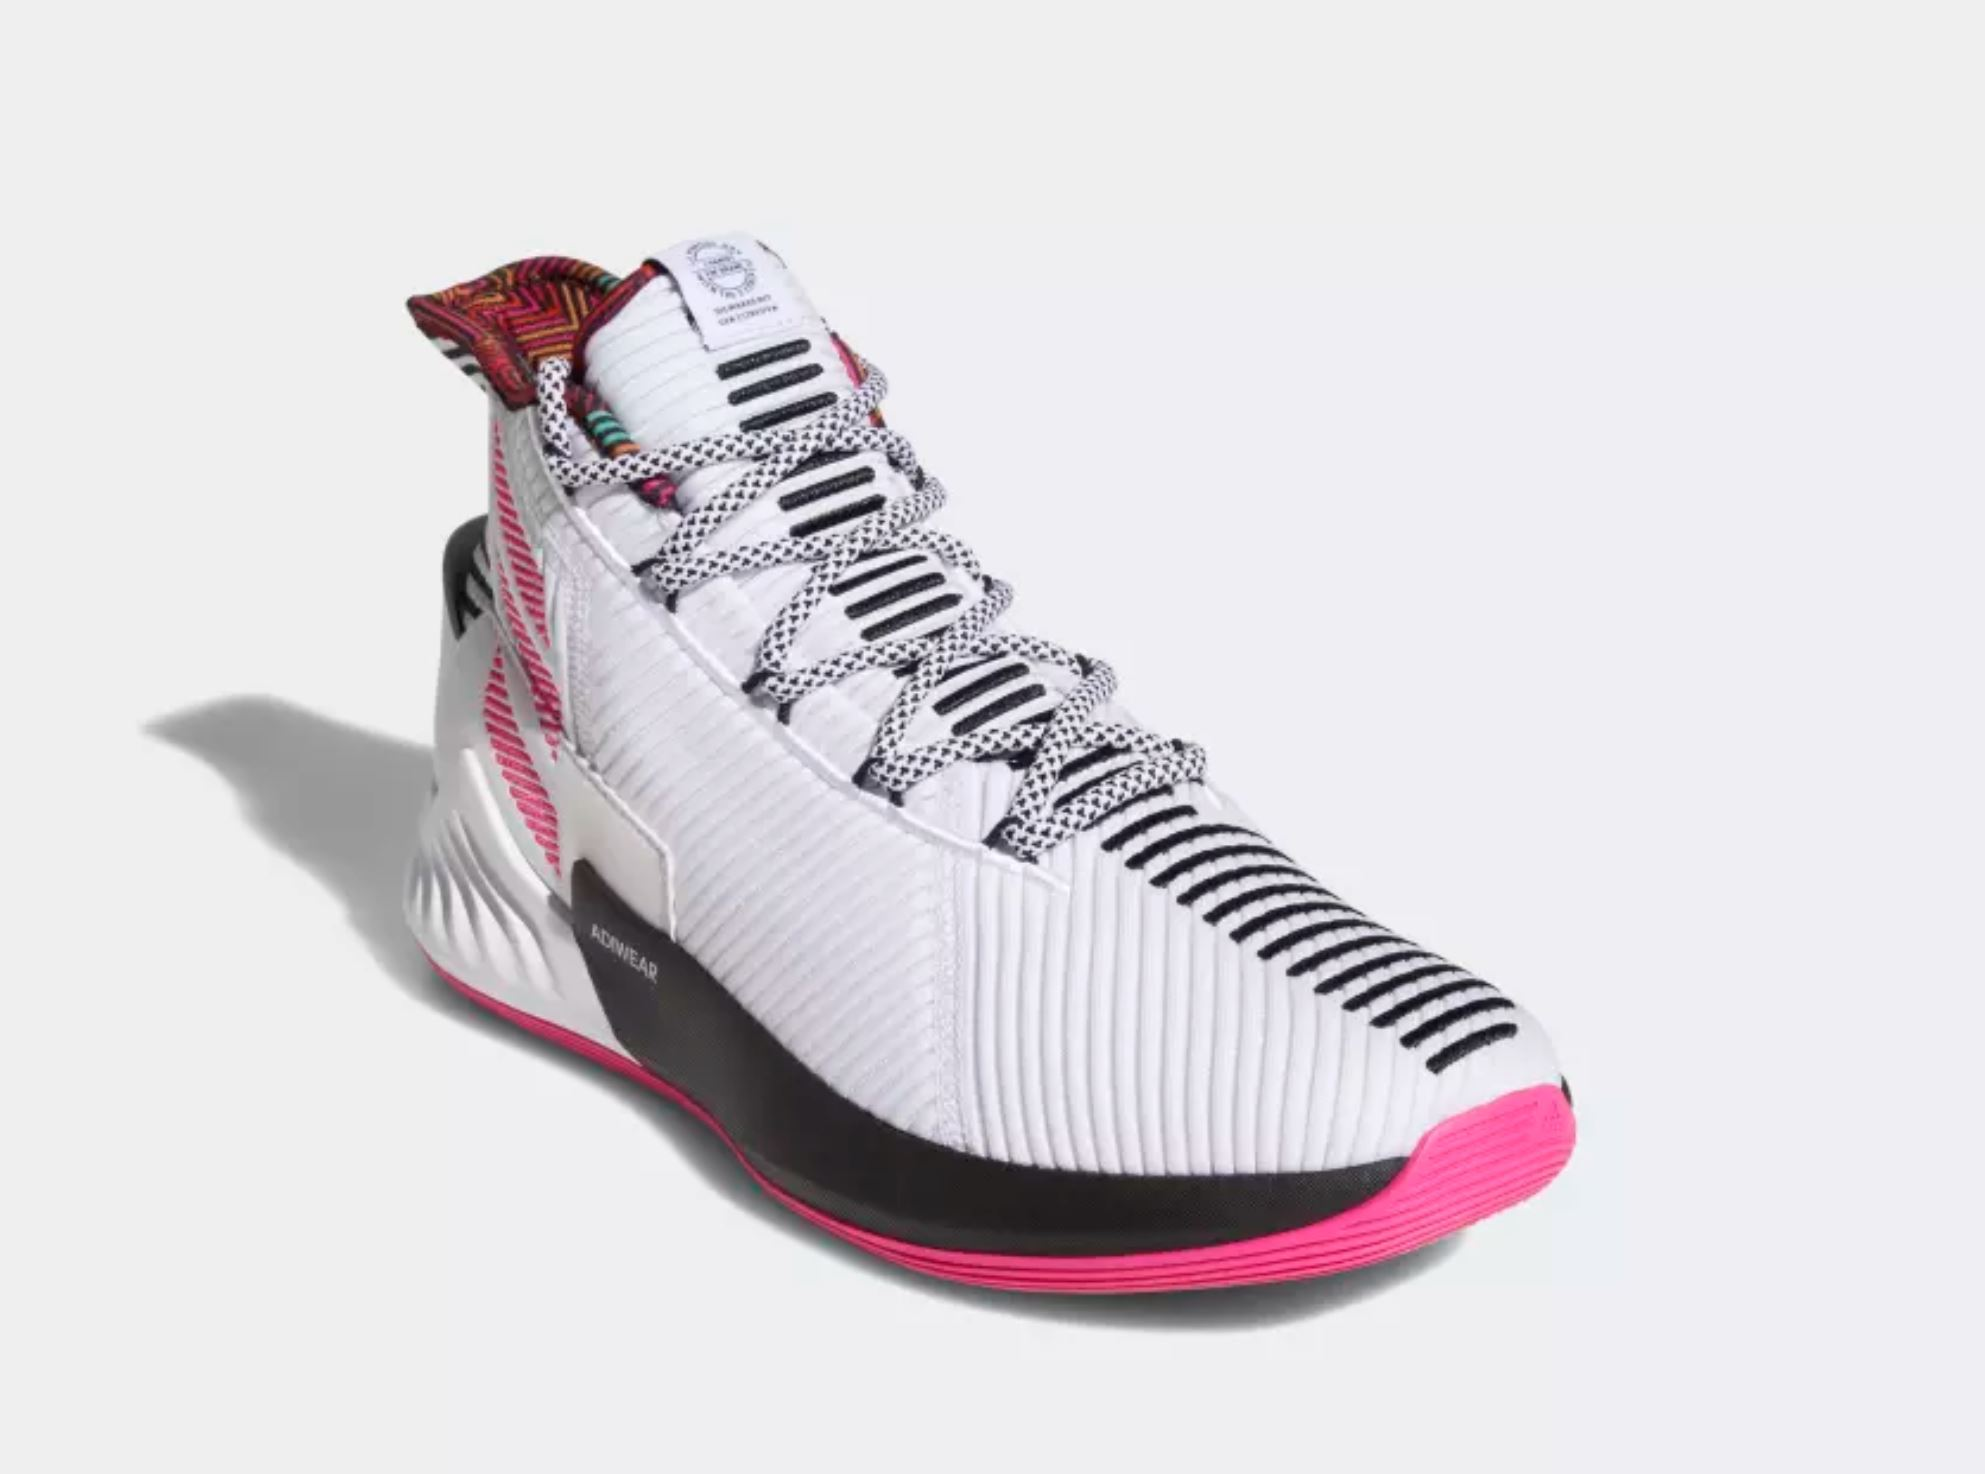 adidas d rose 9 forefoot